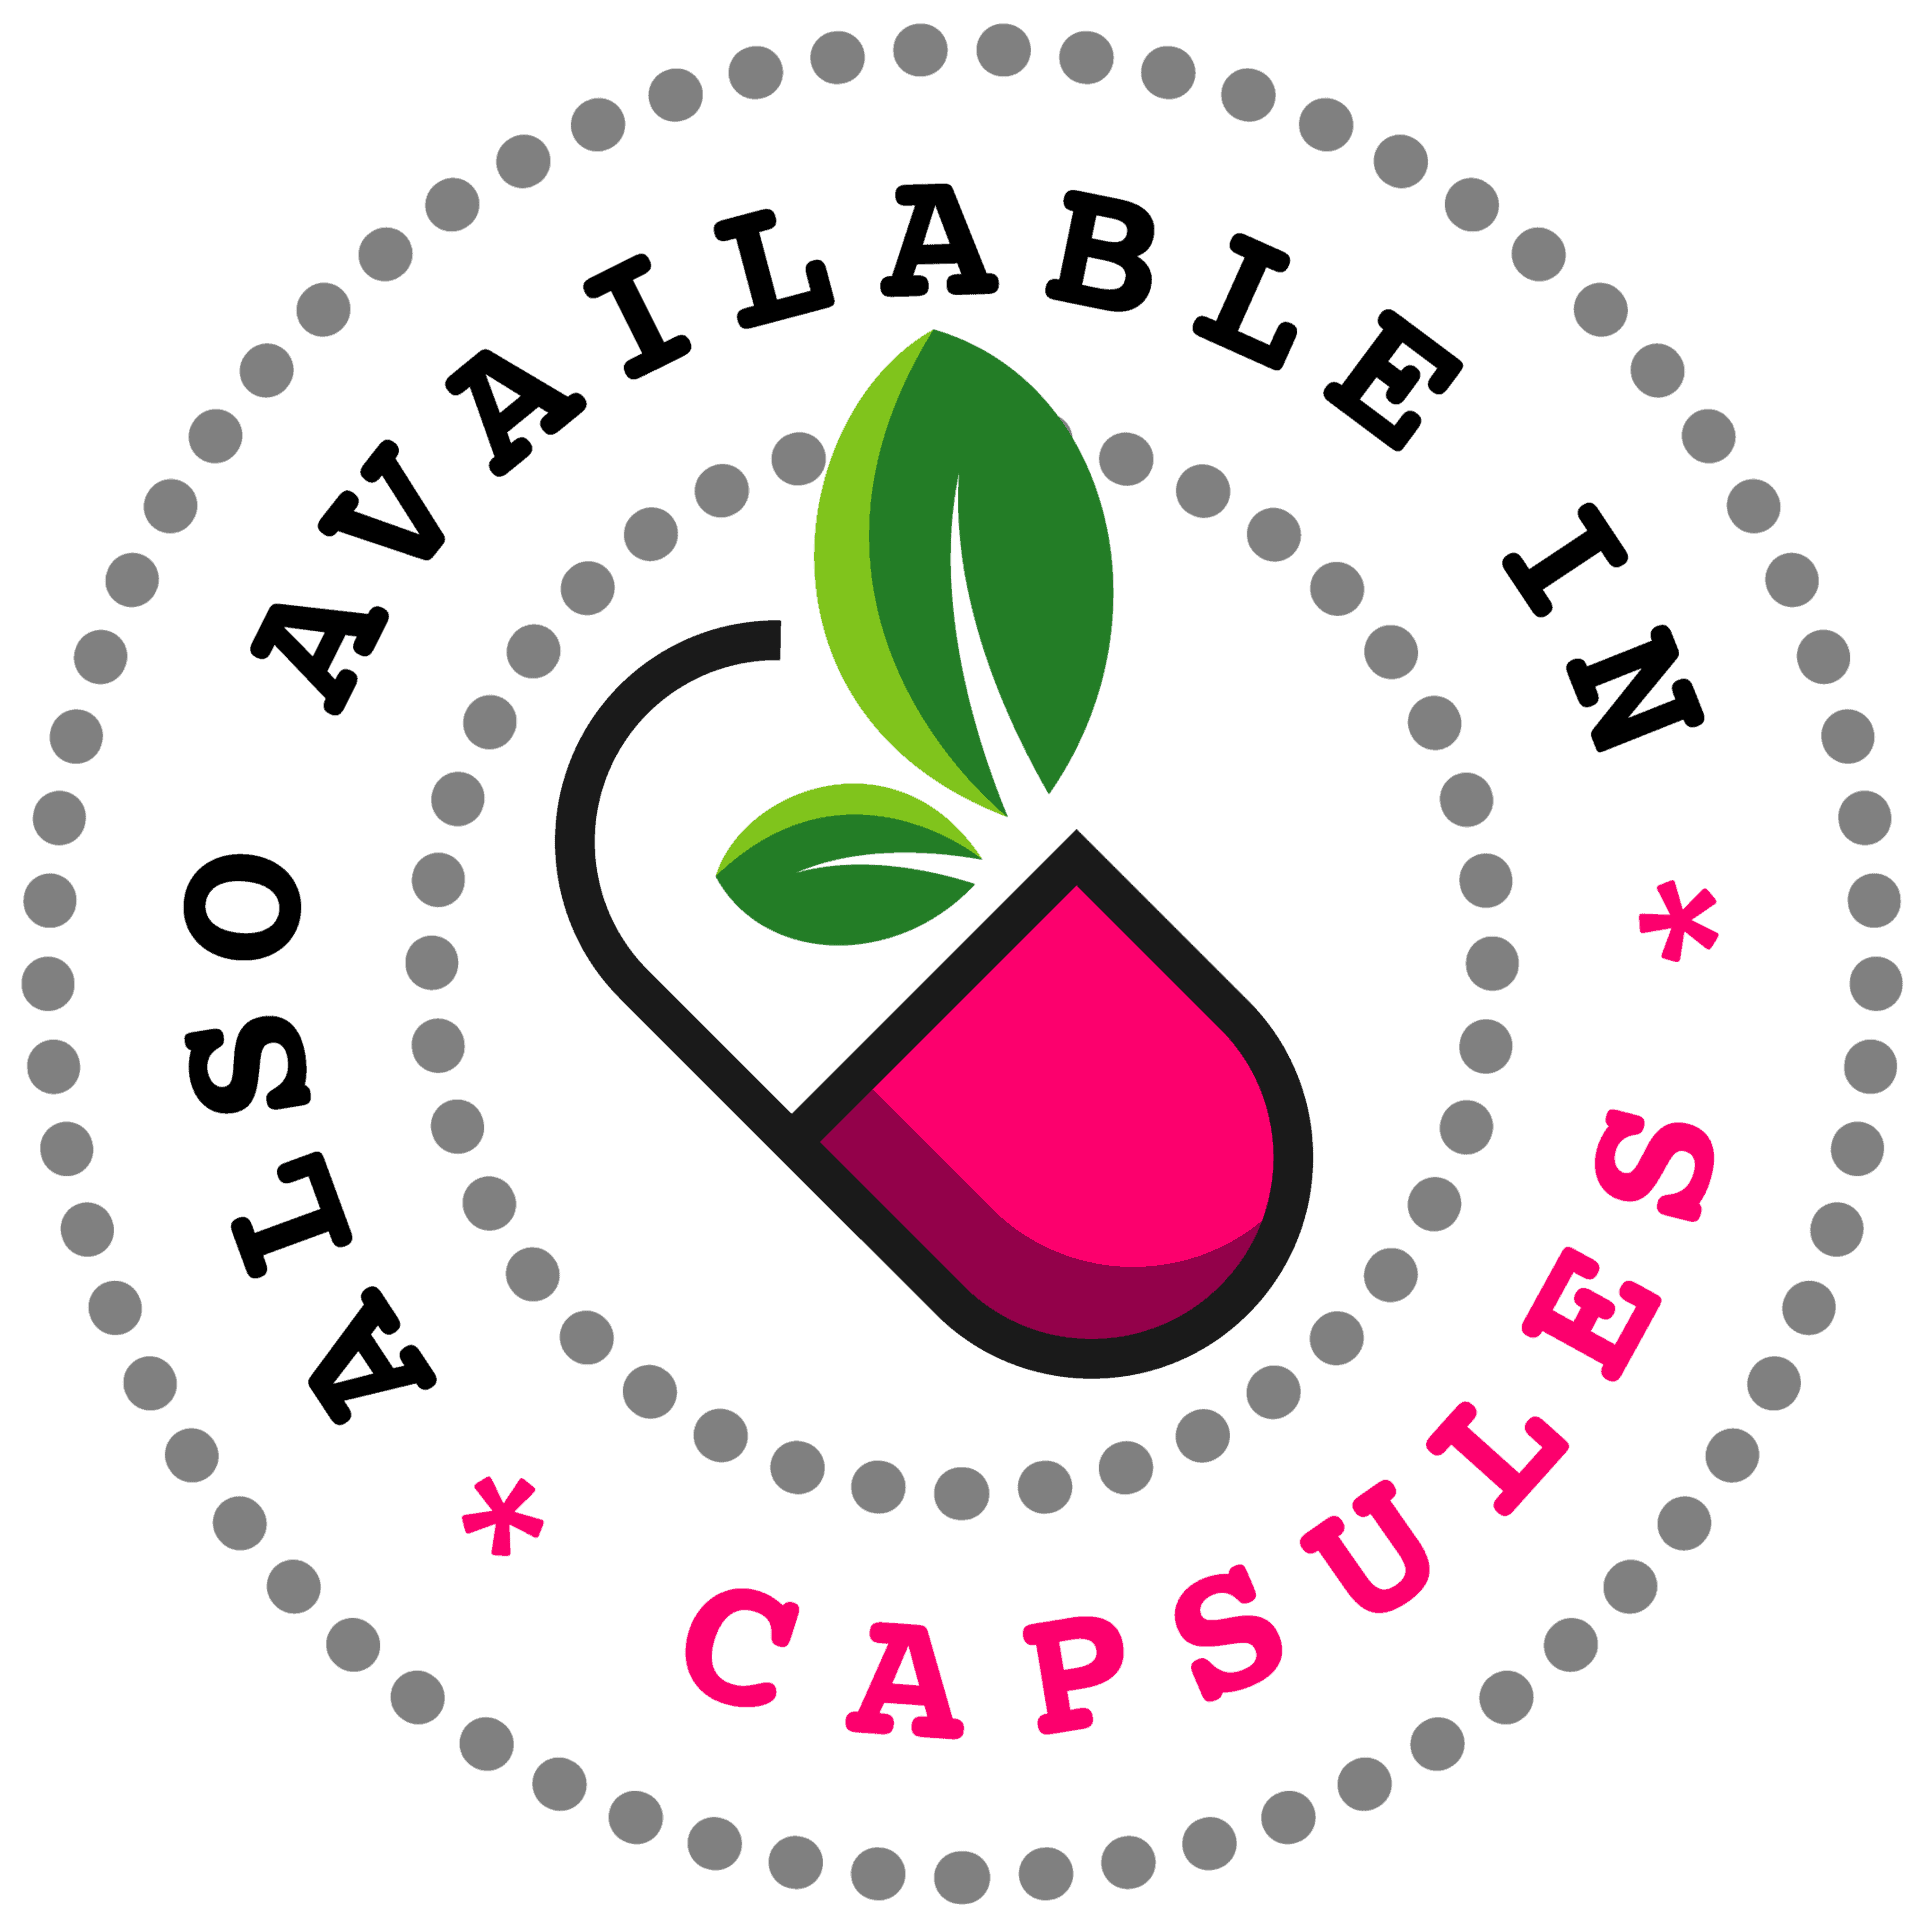 Also available in Capsules